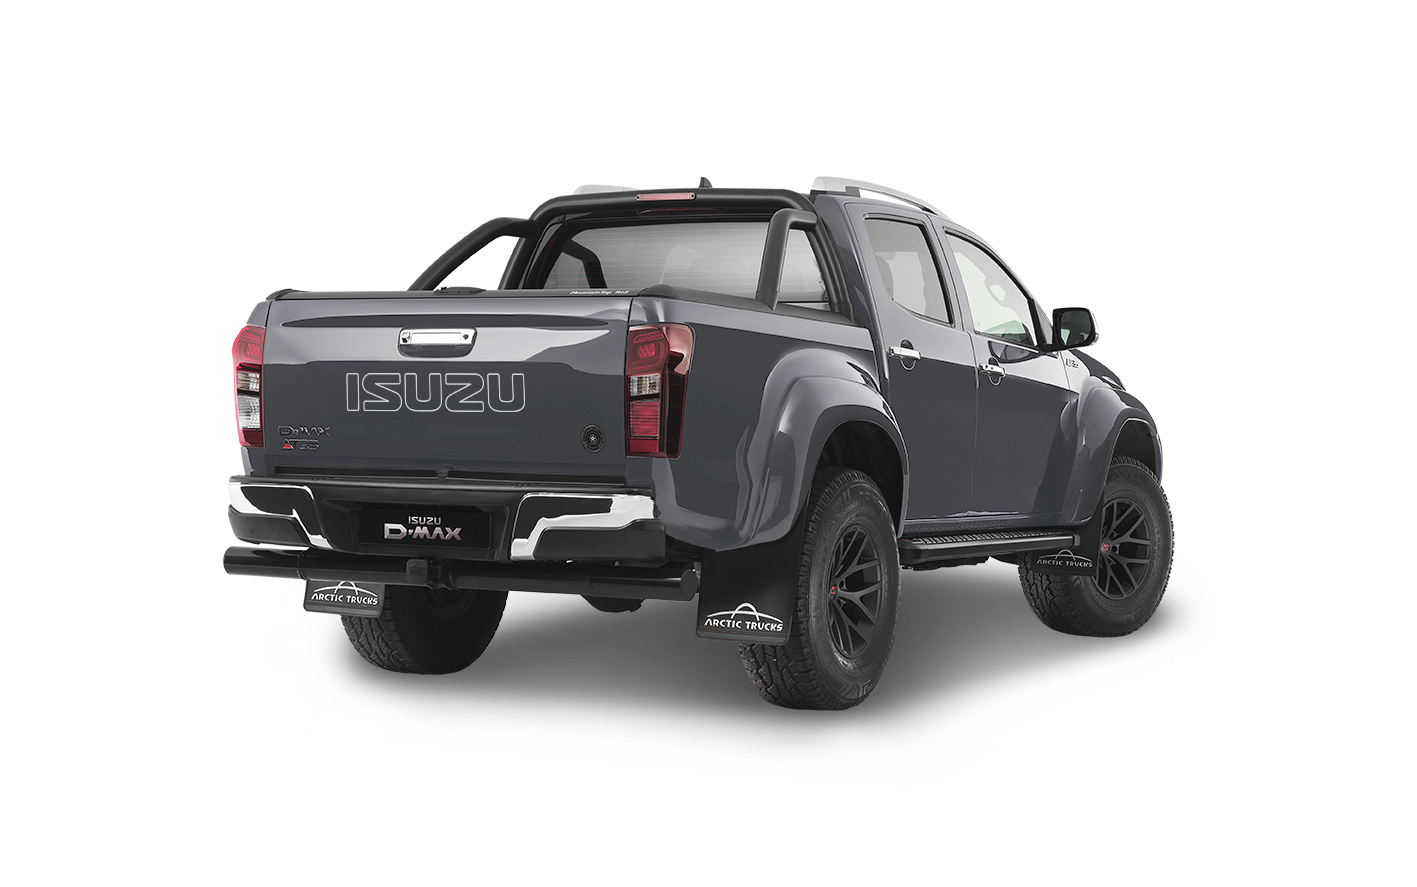 Rear view of the Isuzu D-Max Arctic AT35 in grey